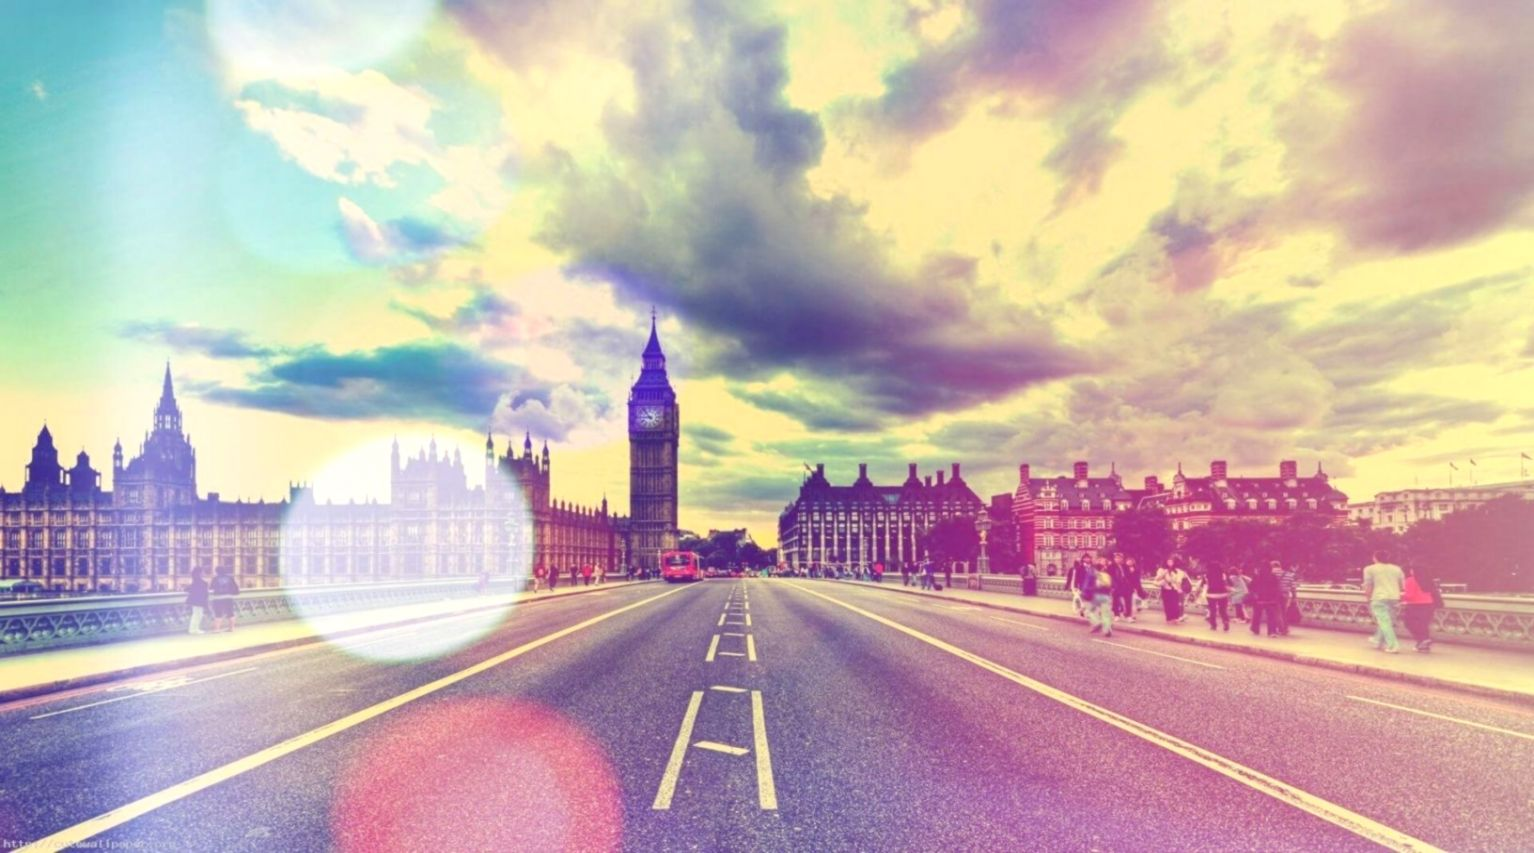 Impressive Decoration Cute Wallpapers For Computer Houses Of Parliament 449843 Hd Wallpaper Backgrounds Download